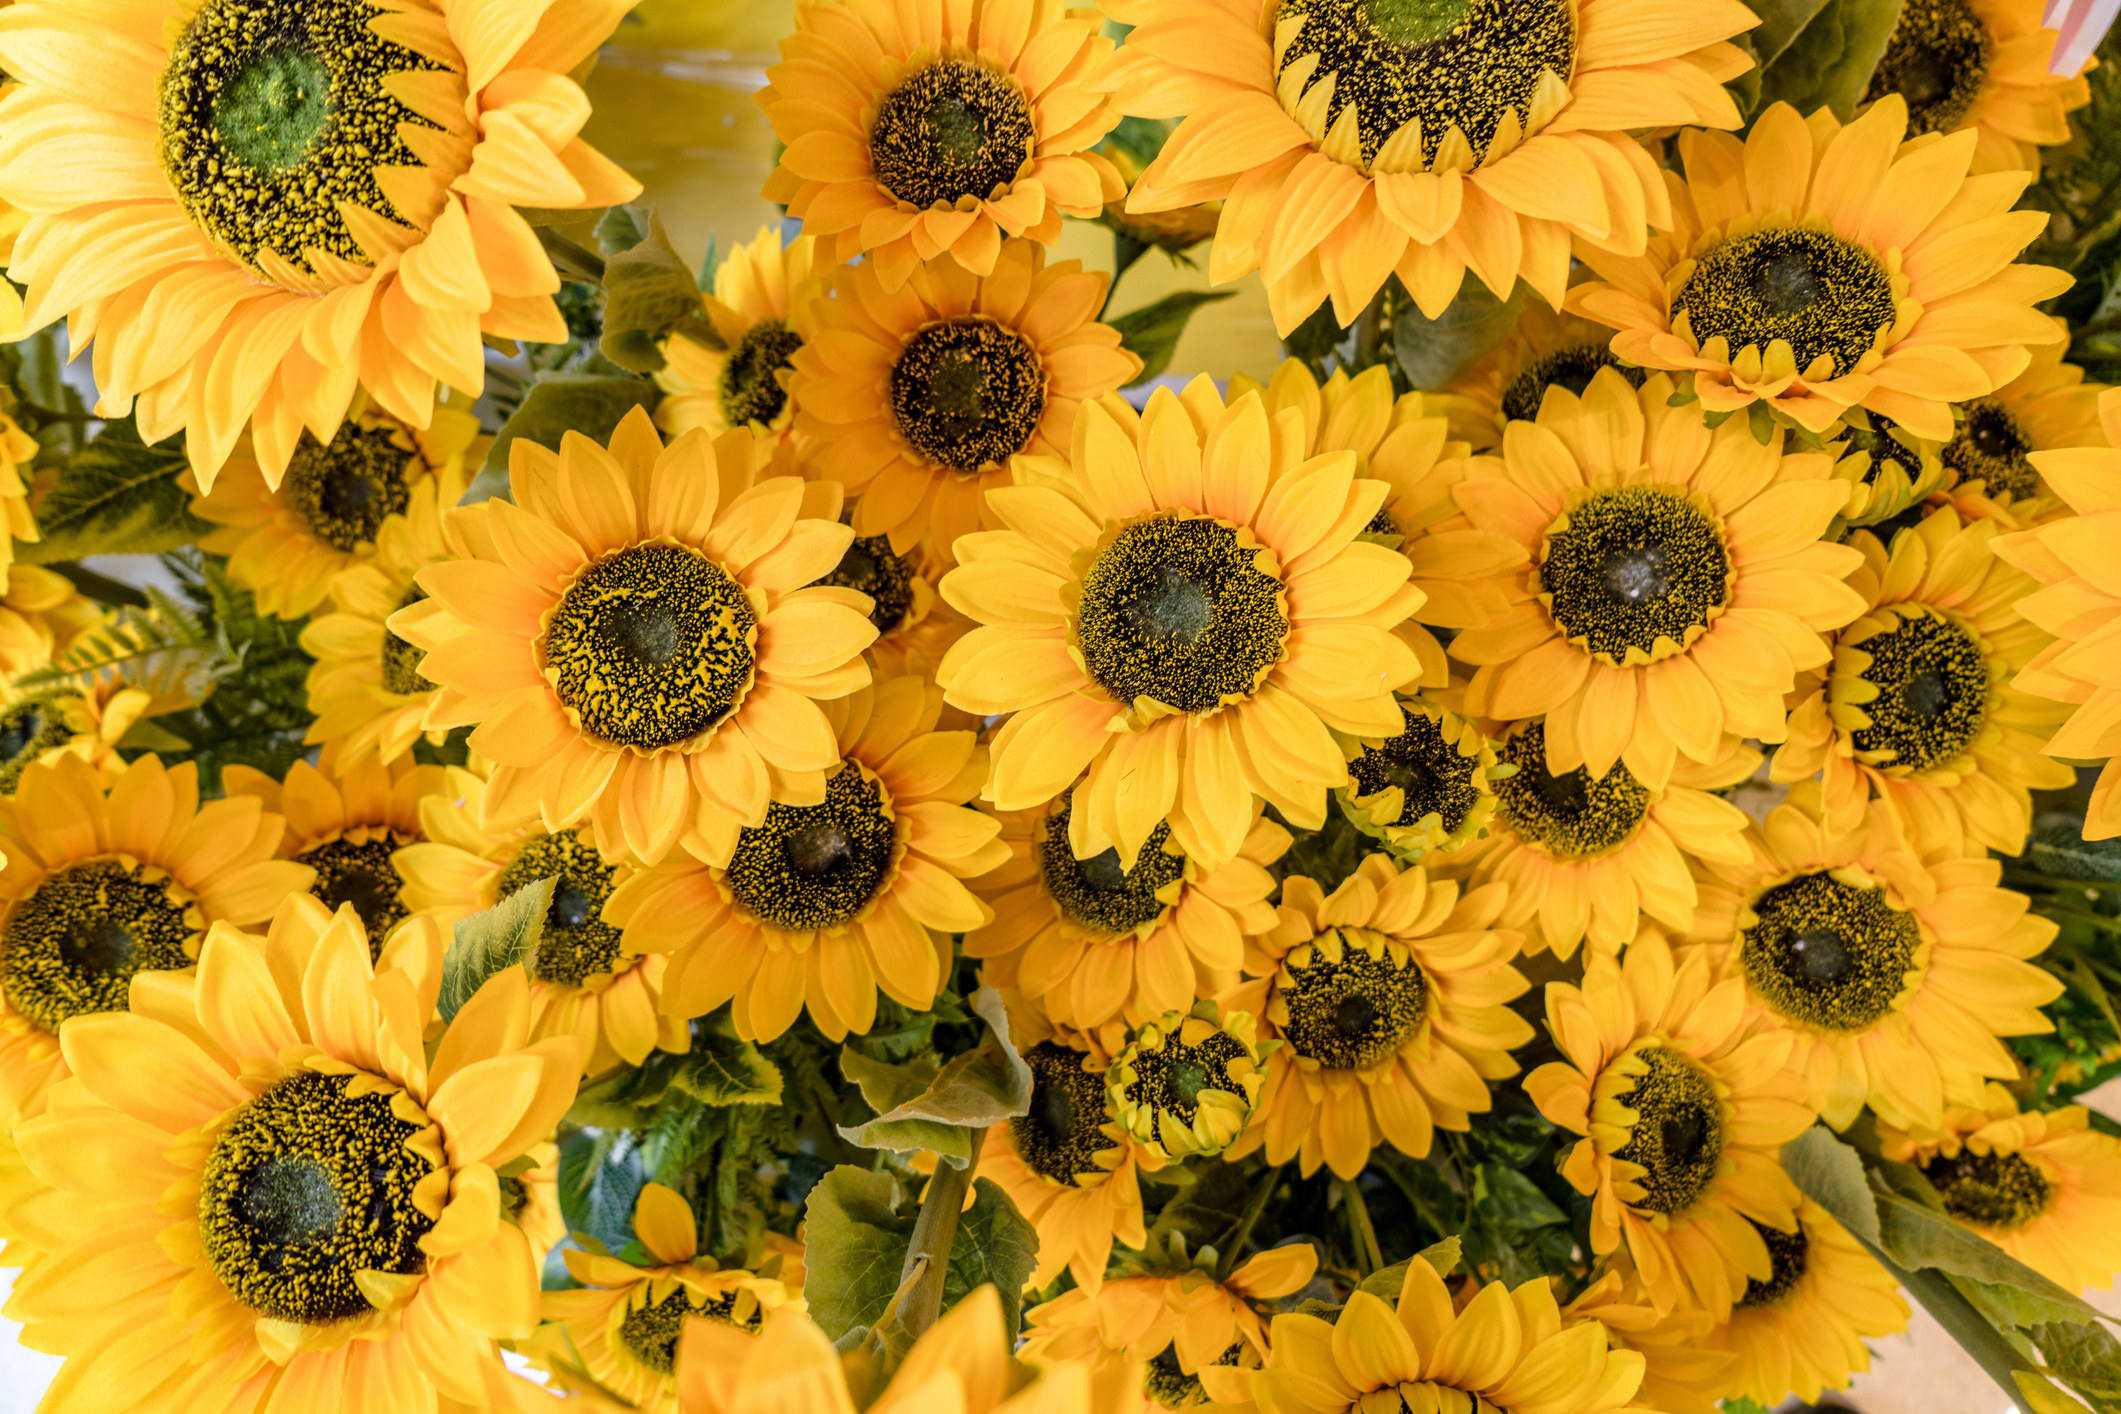 A bunch of wild sunflowers